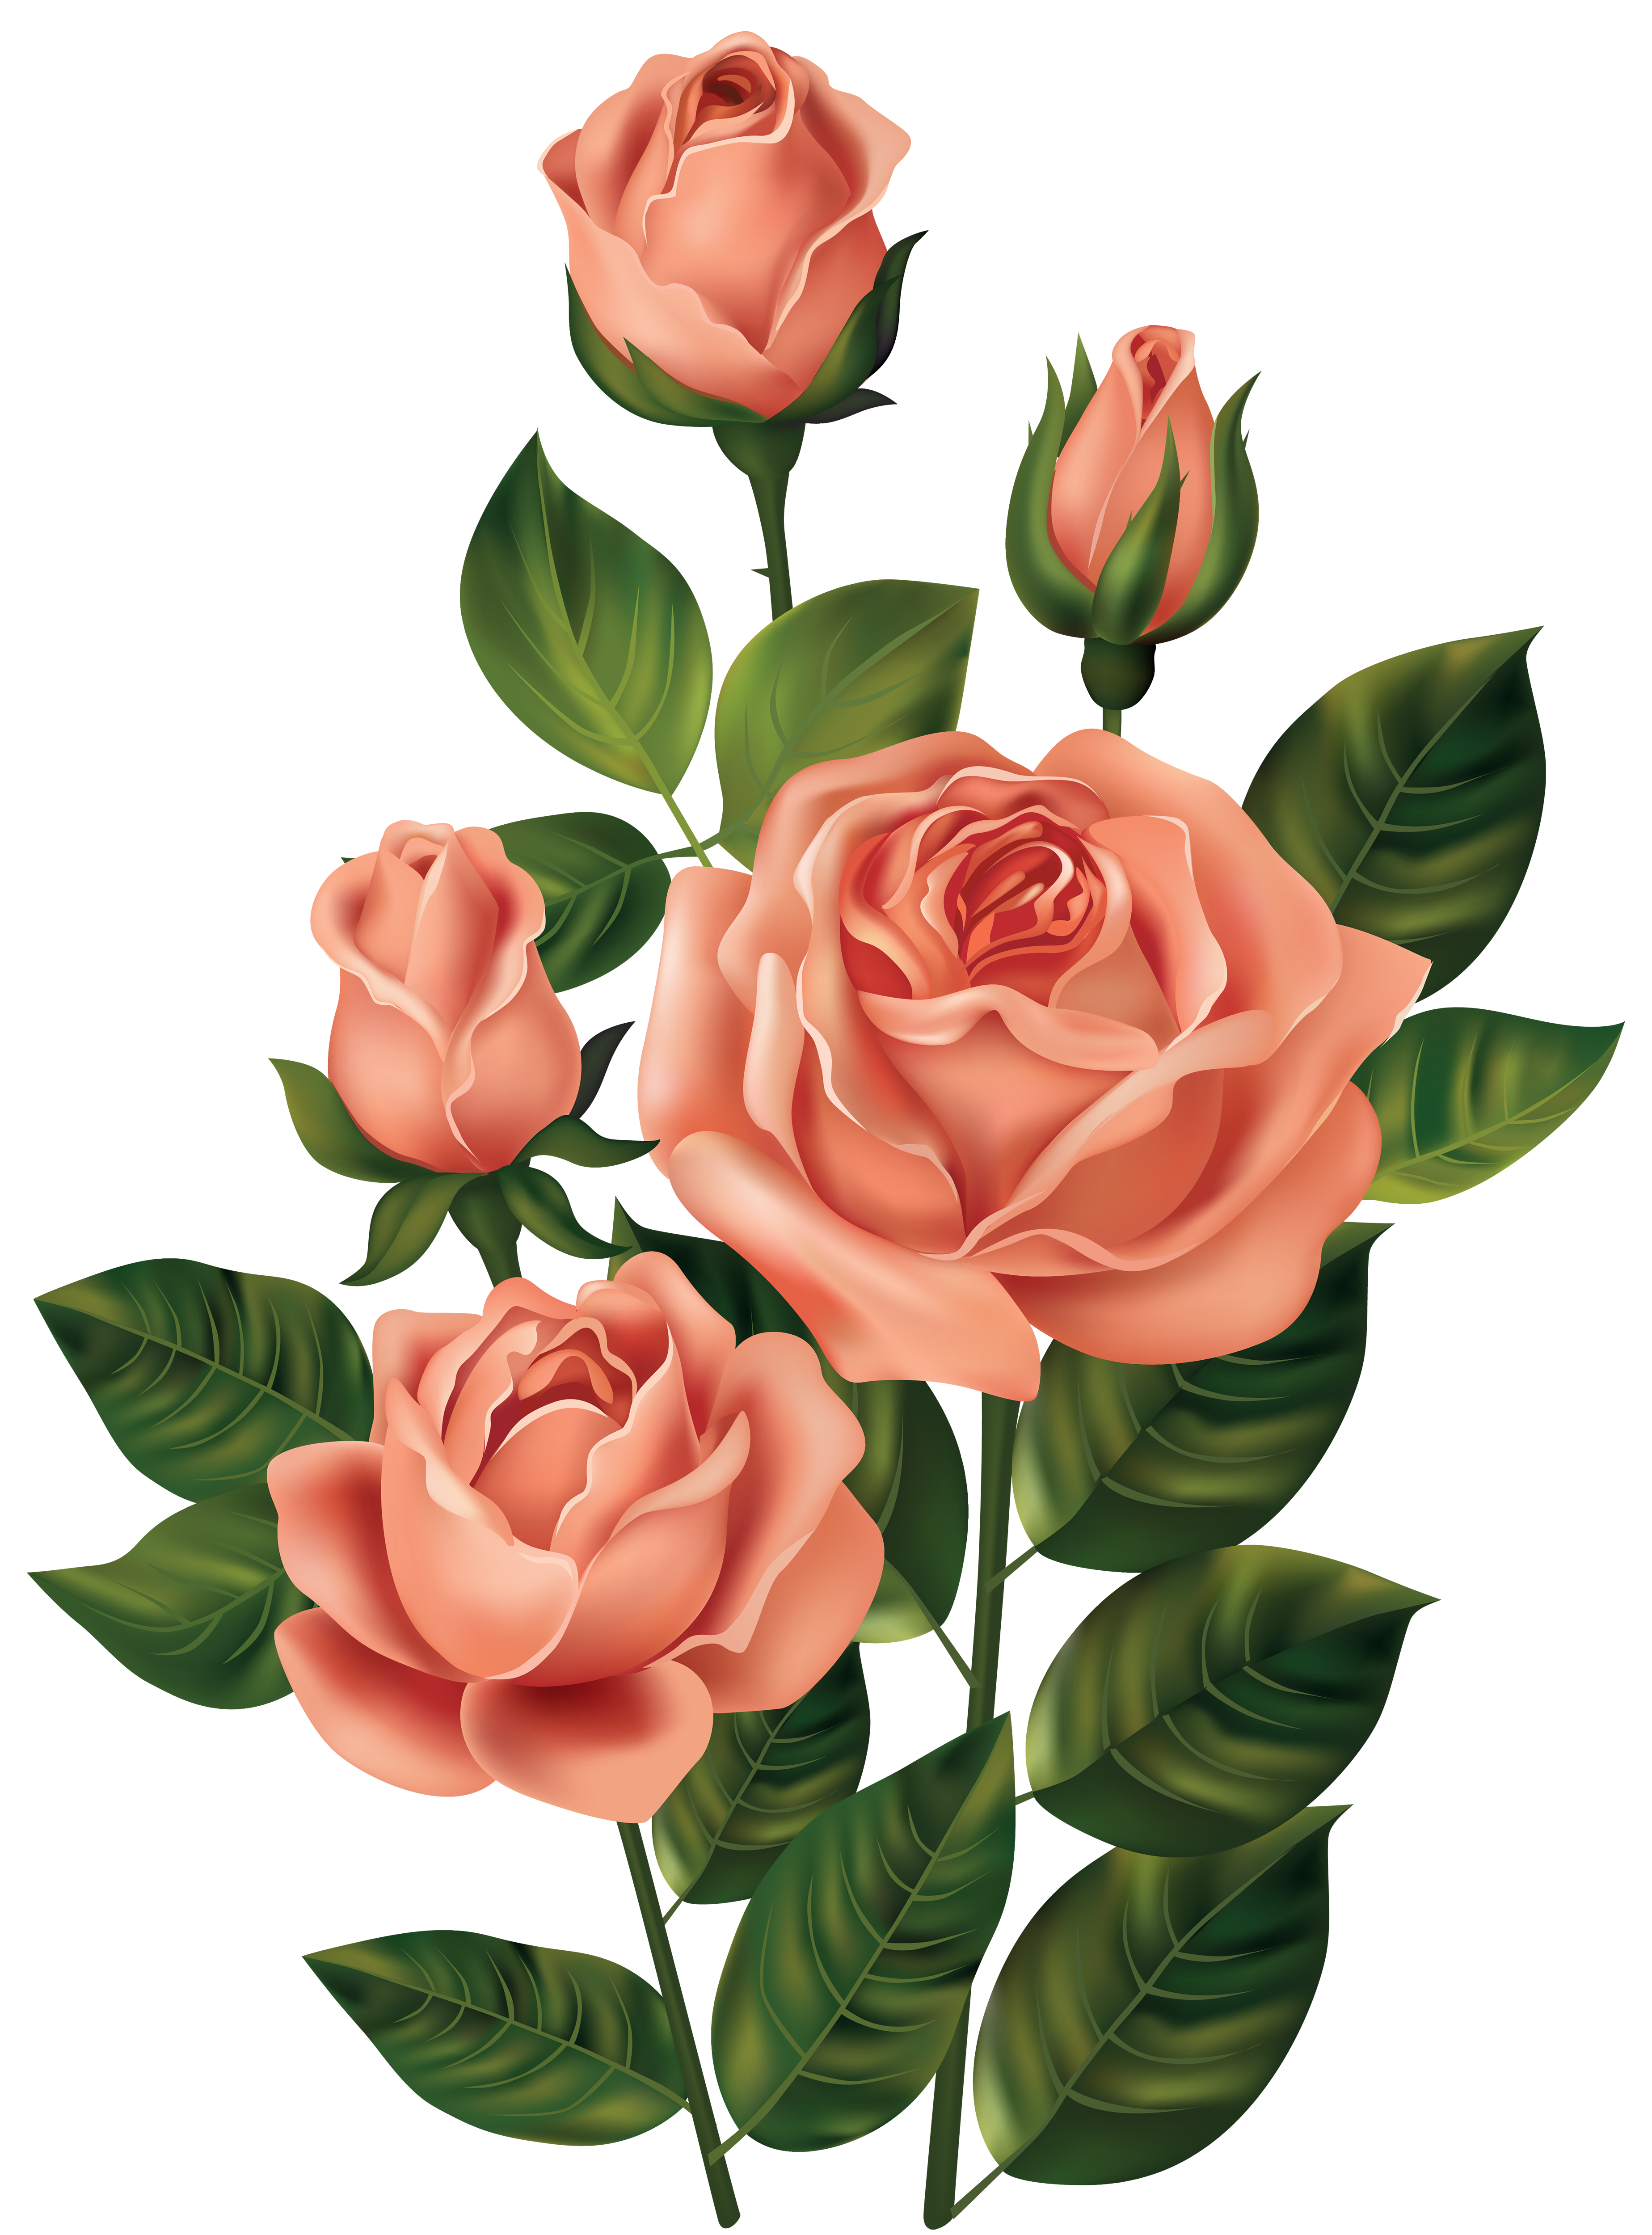 Roses png image pinterest. Clipart rose top